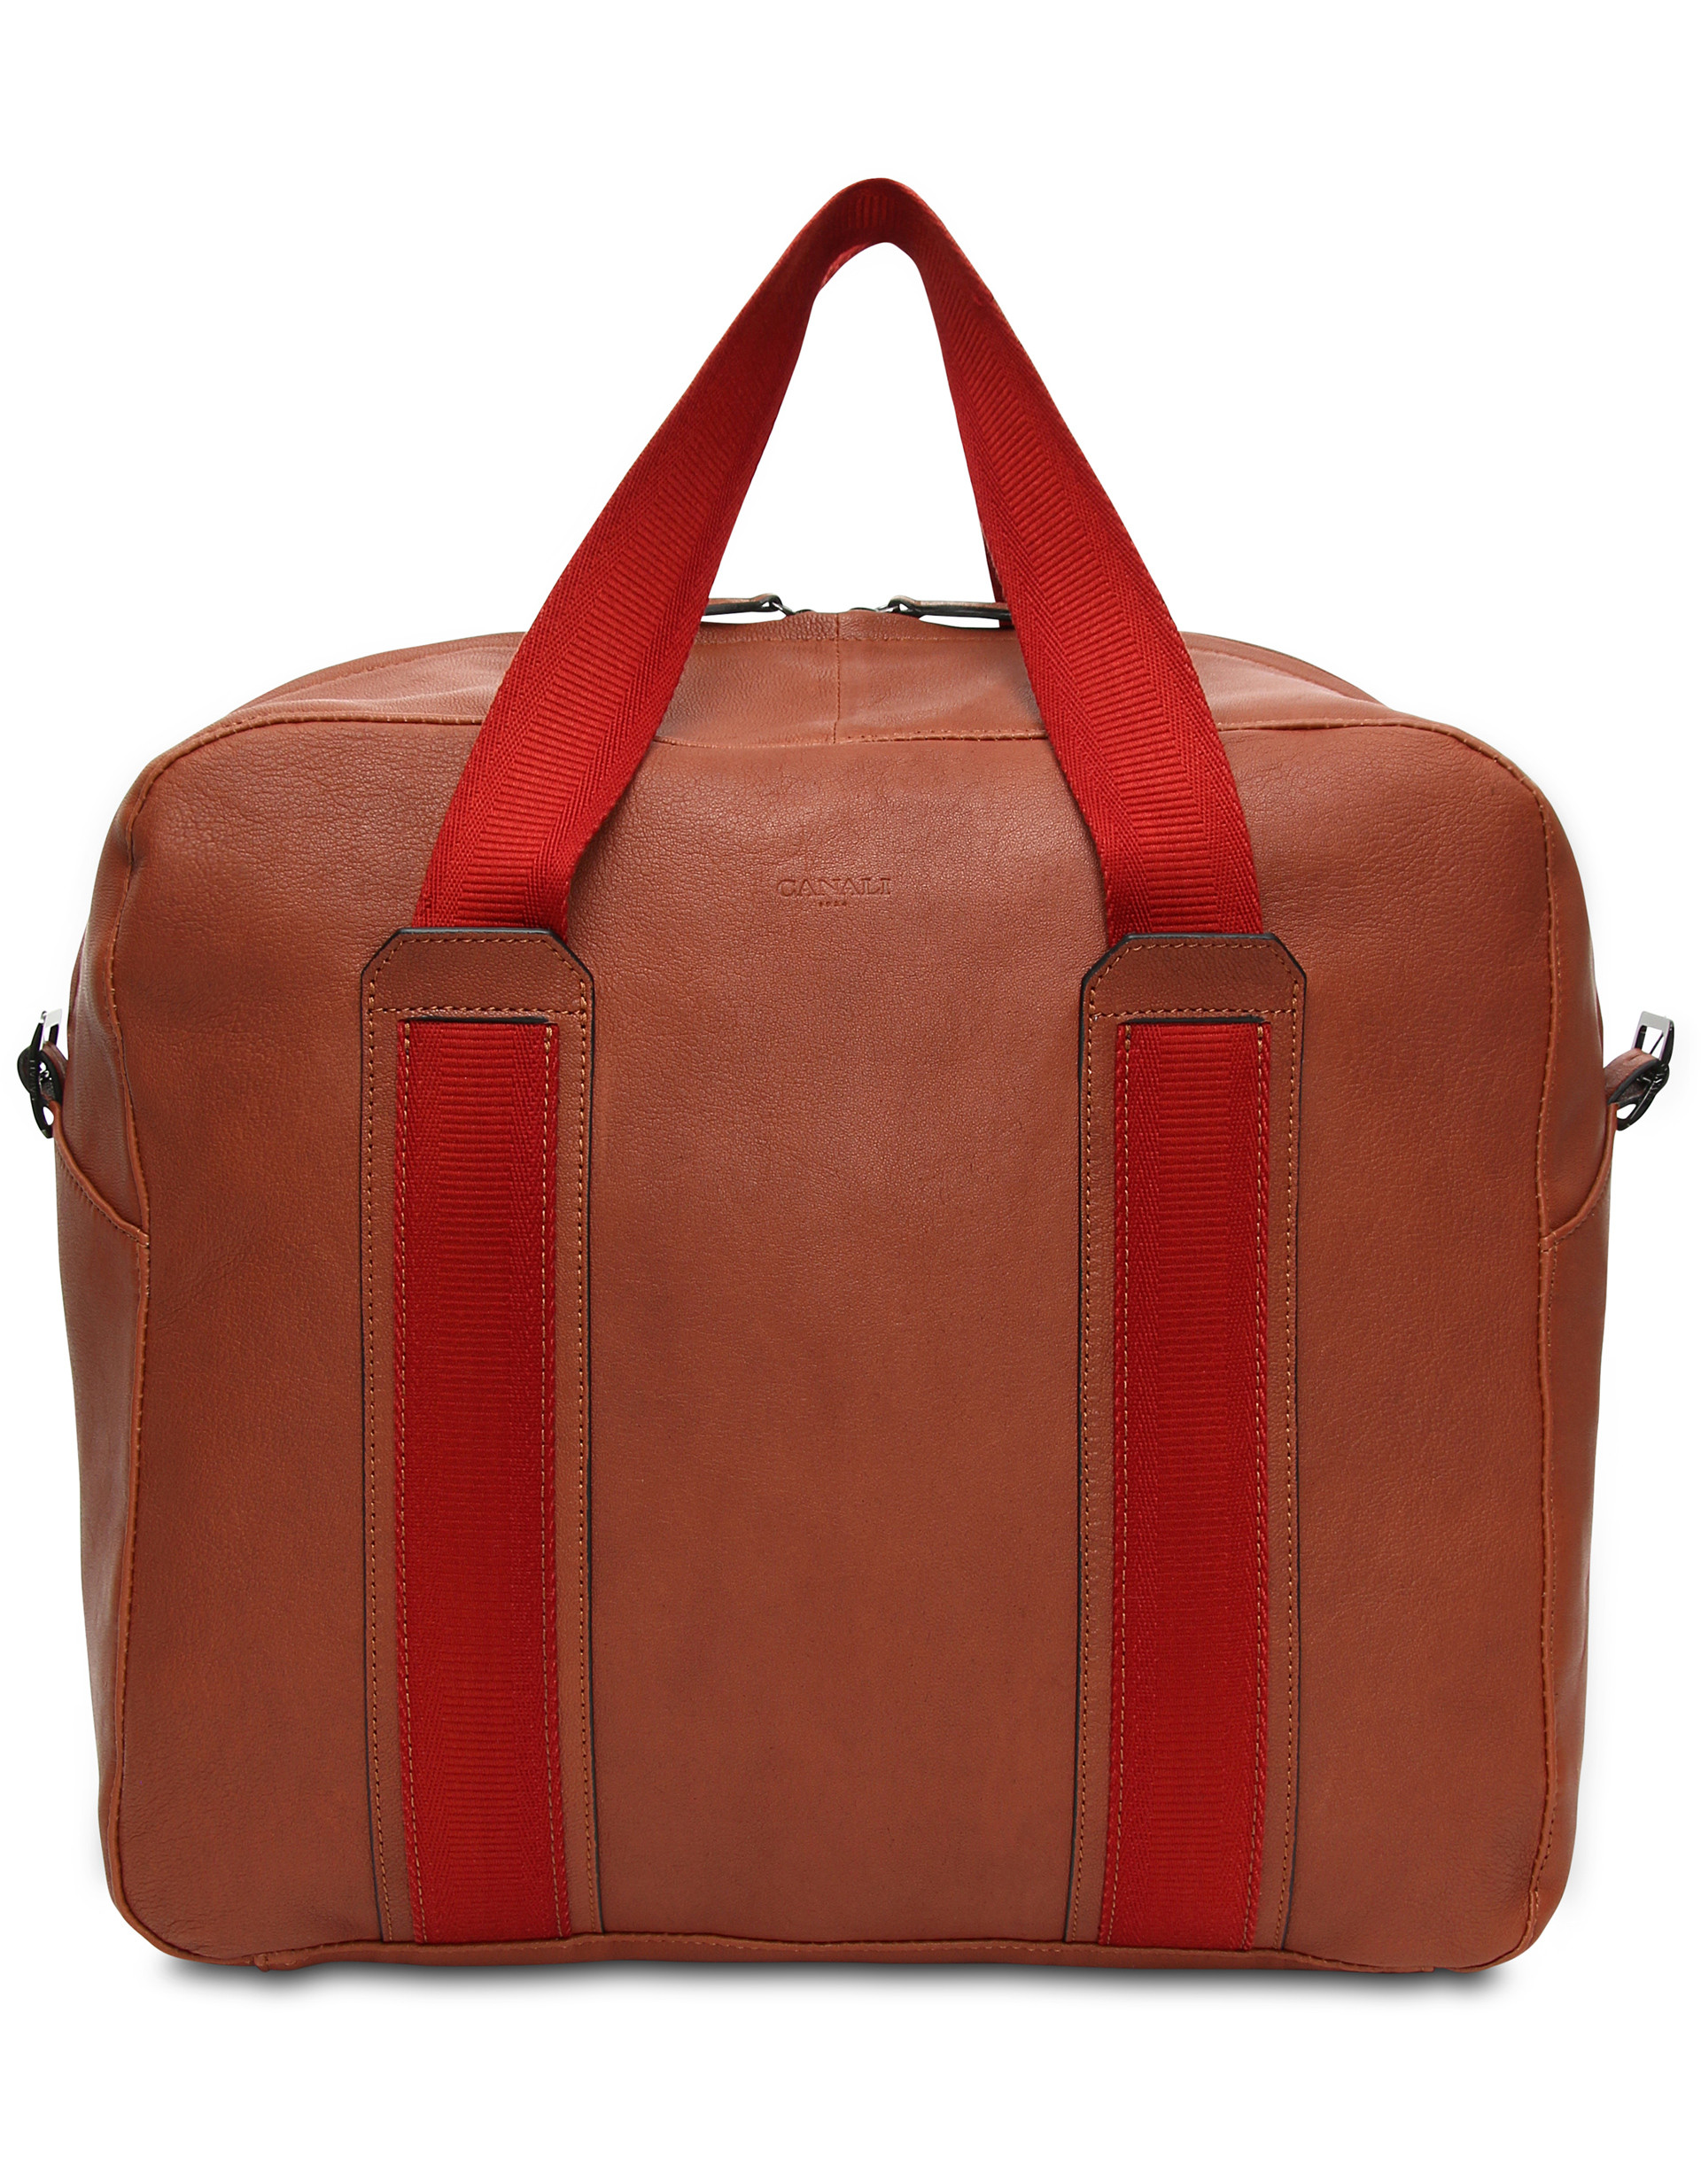 fathers day gift, Canali overnight bag, terracotta with red straps